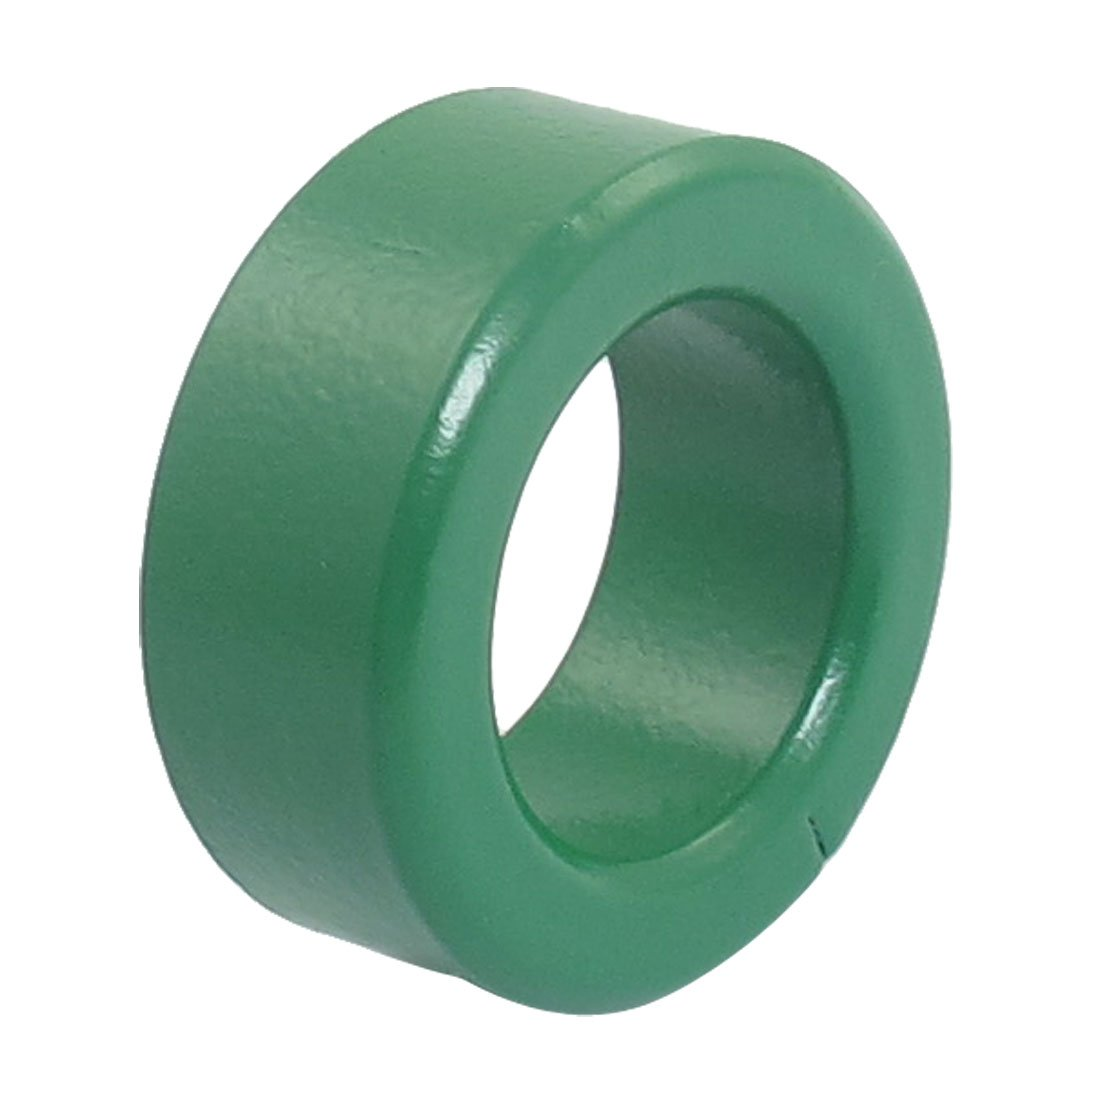 36mm Outside Dia Green Iron Inductor Coils Toroid Ferrite Cores transformers ferrite toroid cores green 74mm x 39mm x 13mm